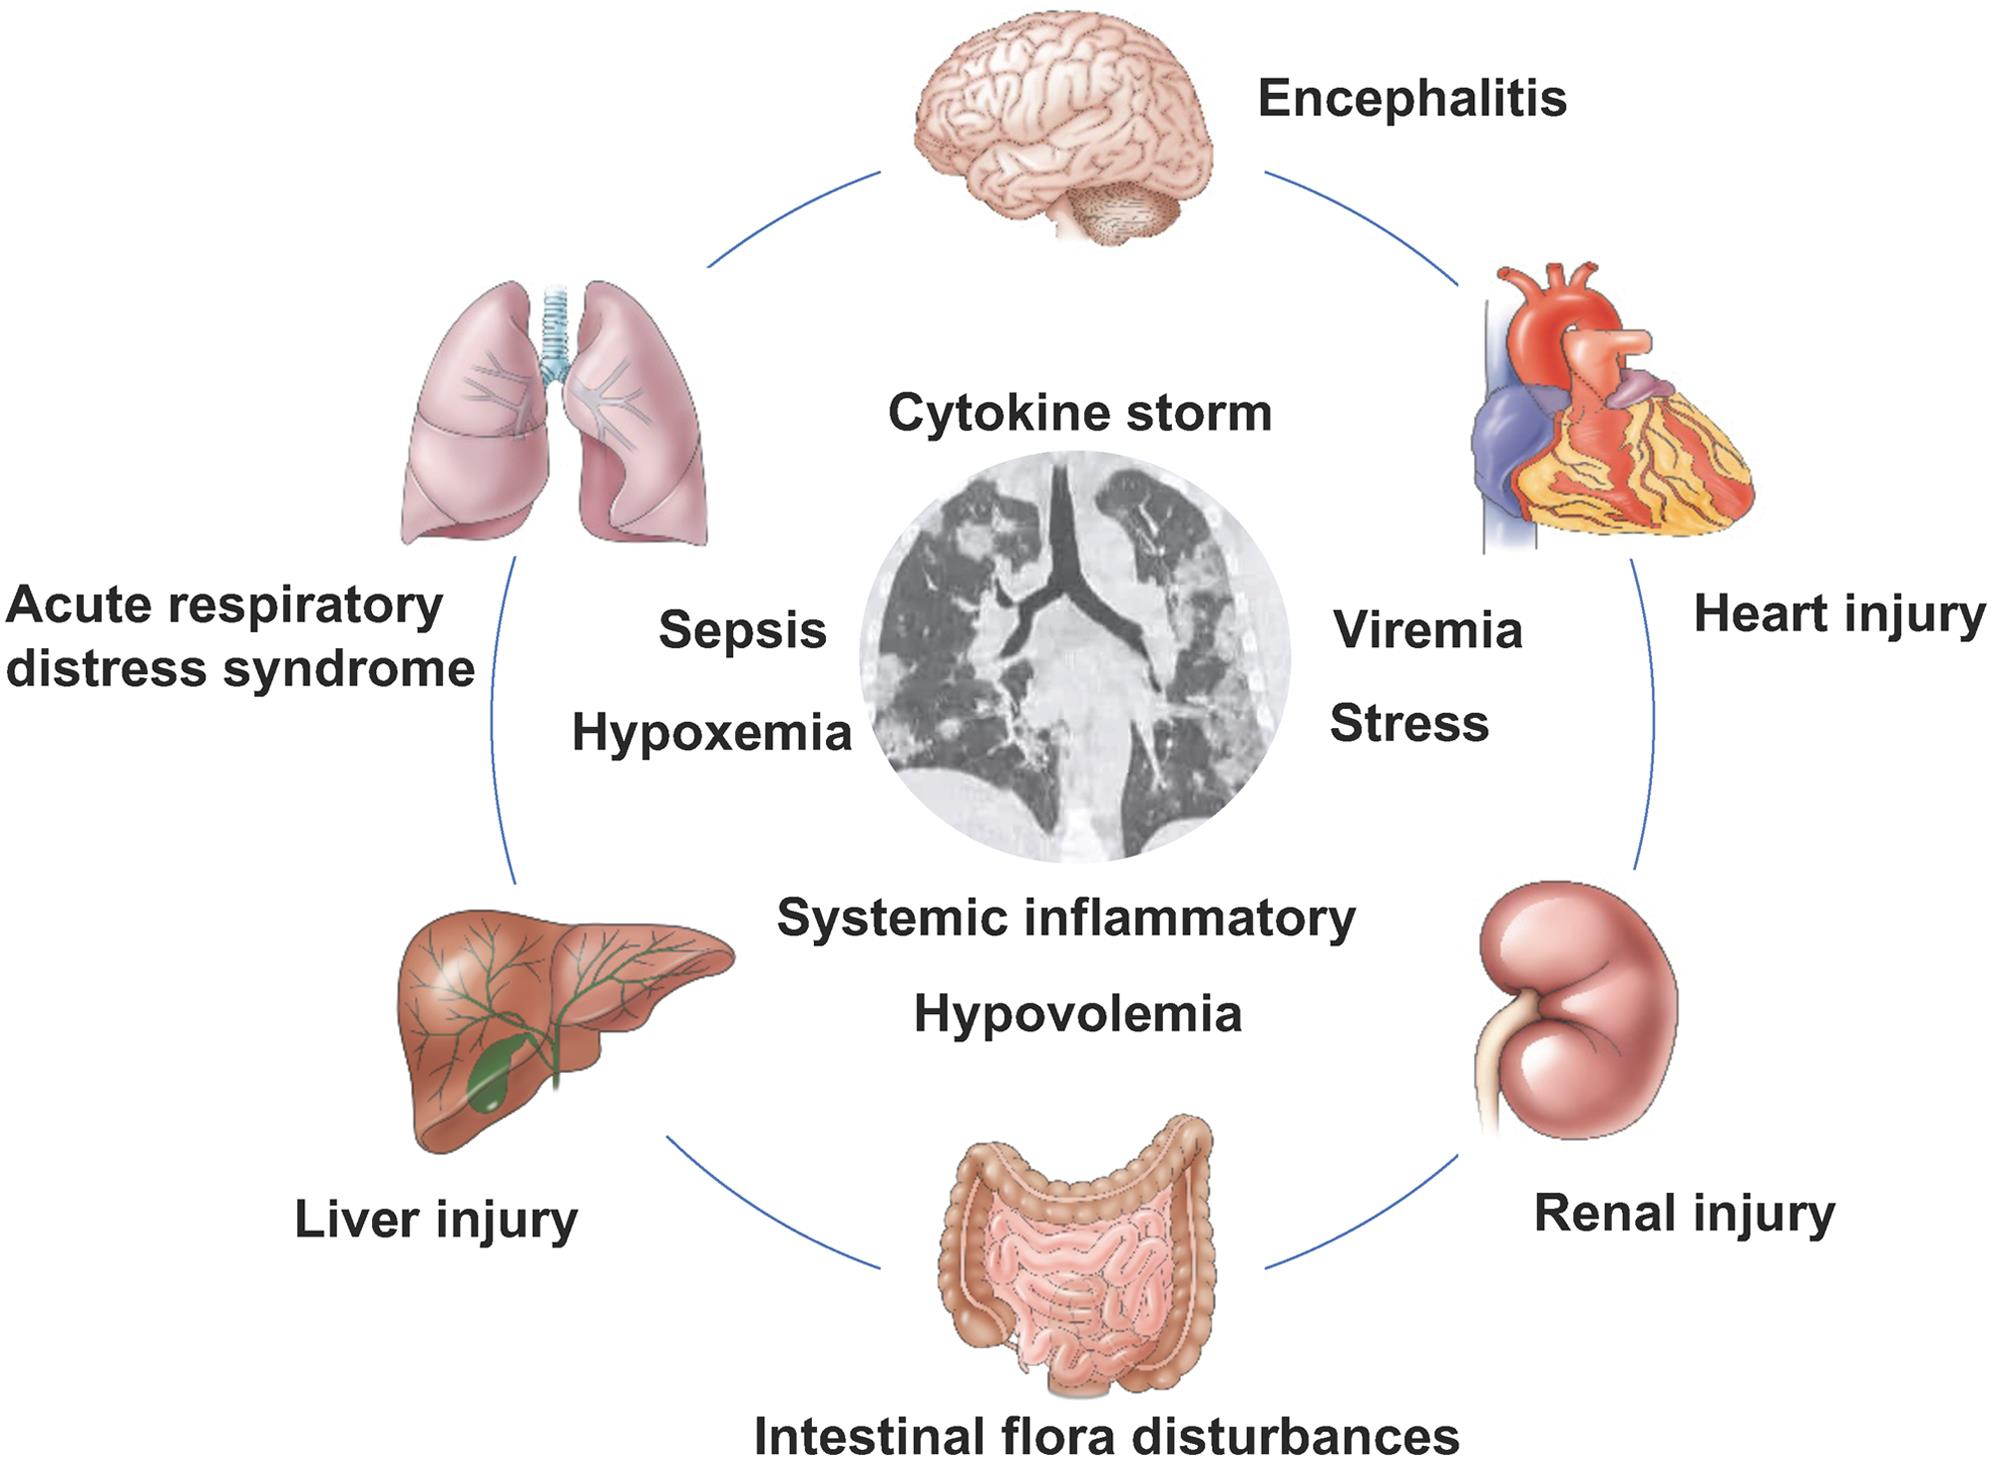 Complications and disease mechanisms in patients with 2019 coronavirus infection.